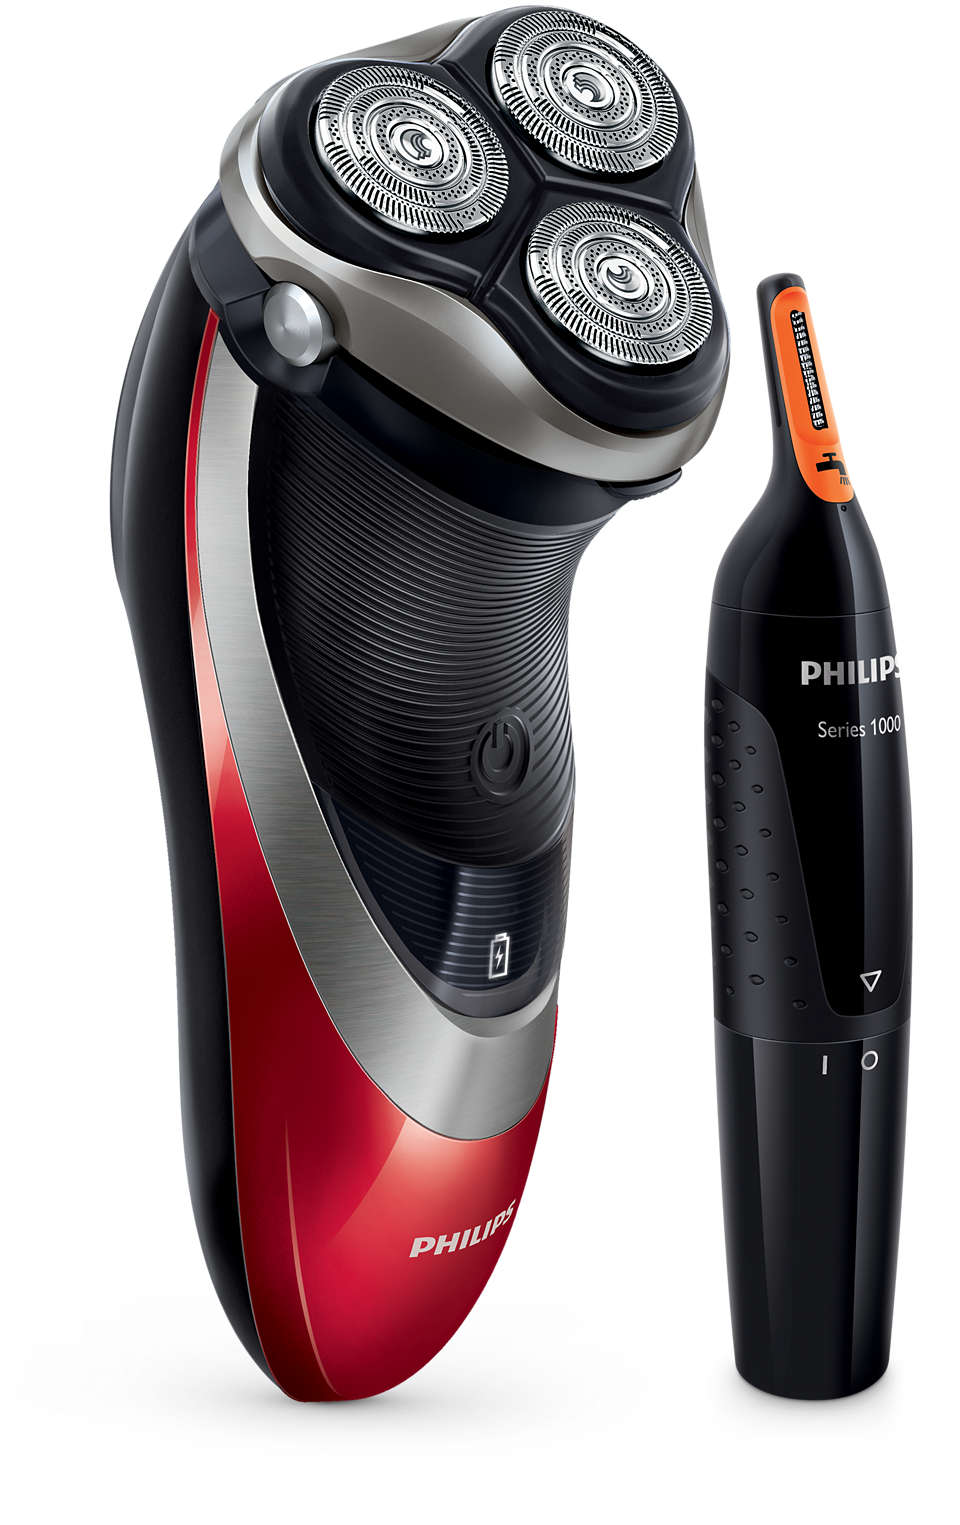 A faster, closer shave